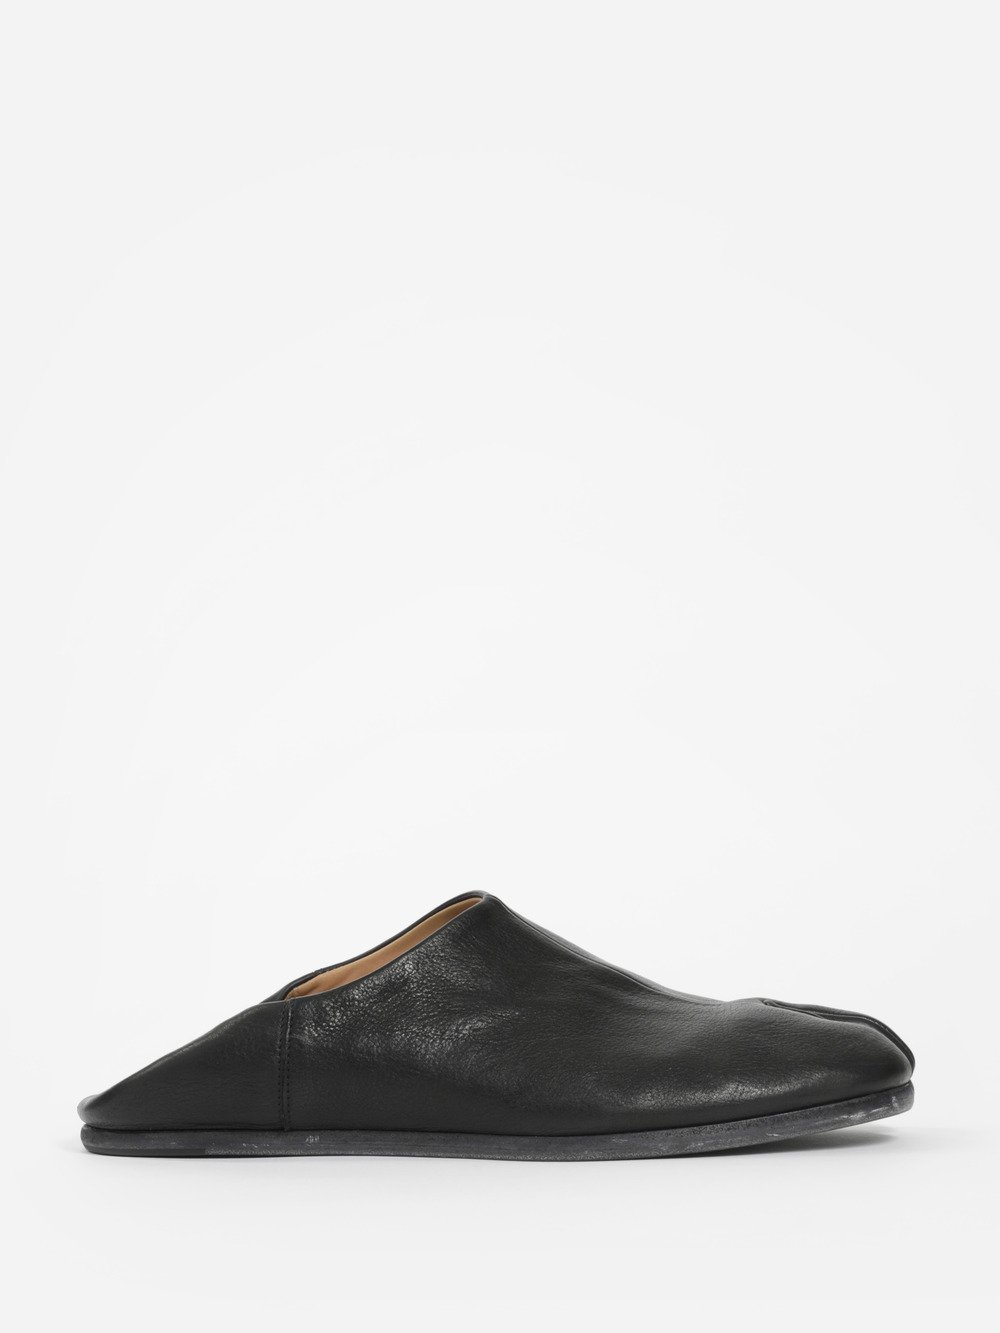 Tabi Collapsible-heel Split-toe Leather Loafers Maison Martin Margiela